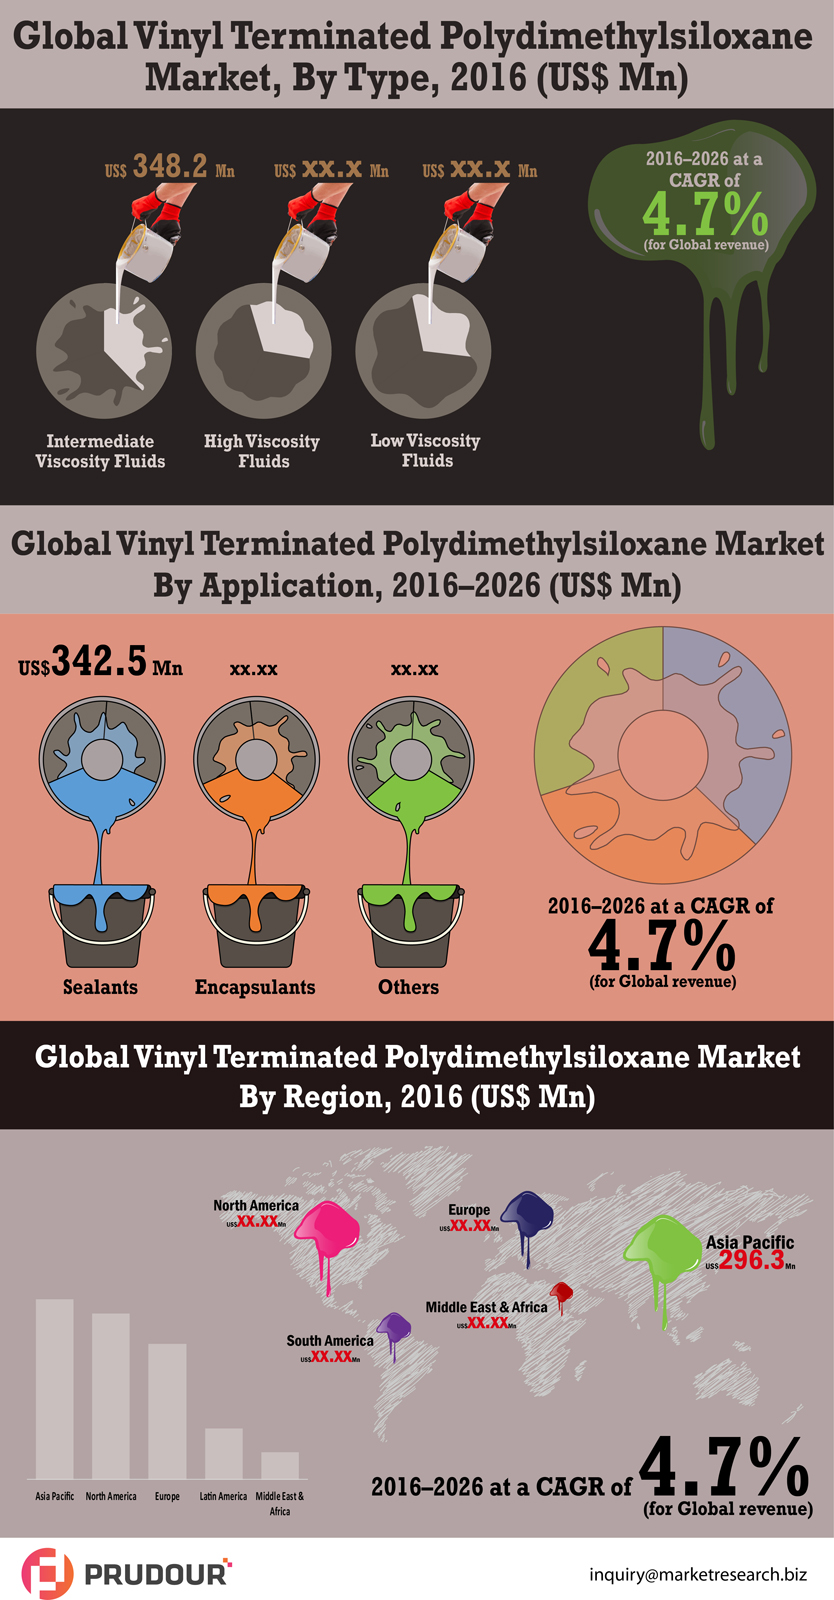 vinyl-terminated-polydimethylsiloxane-market-infographic-plaza